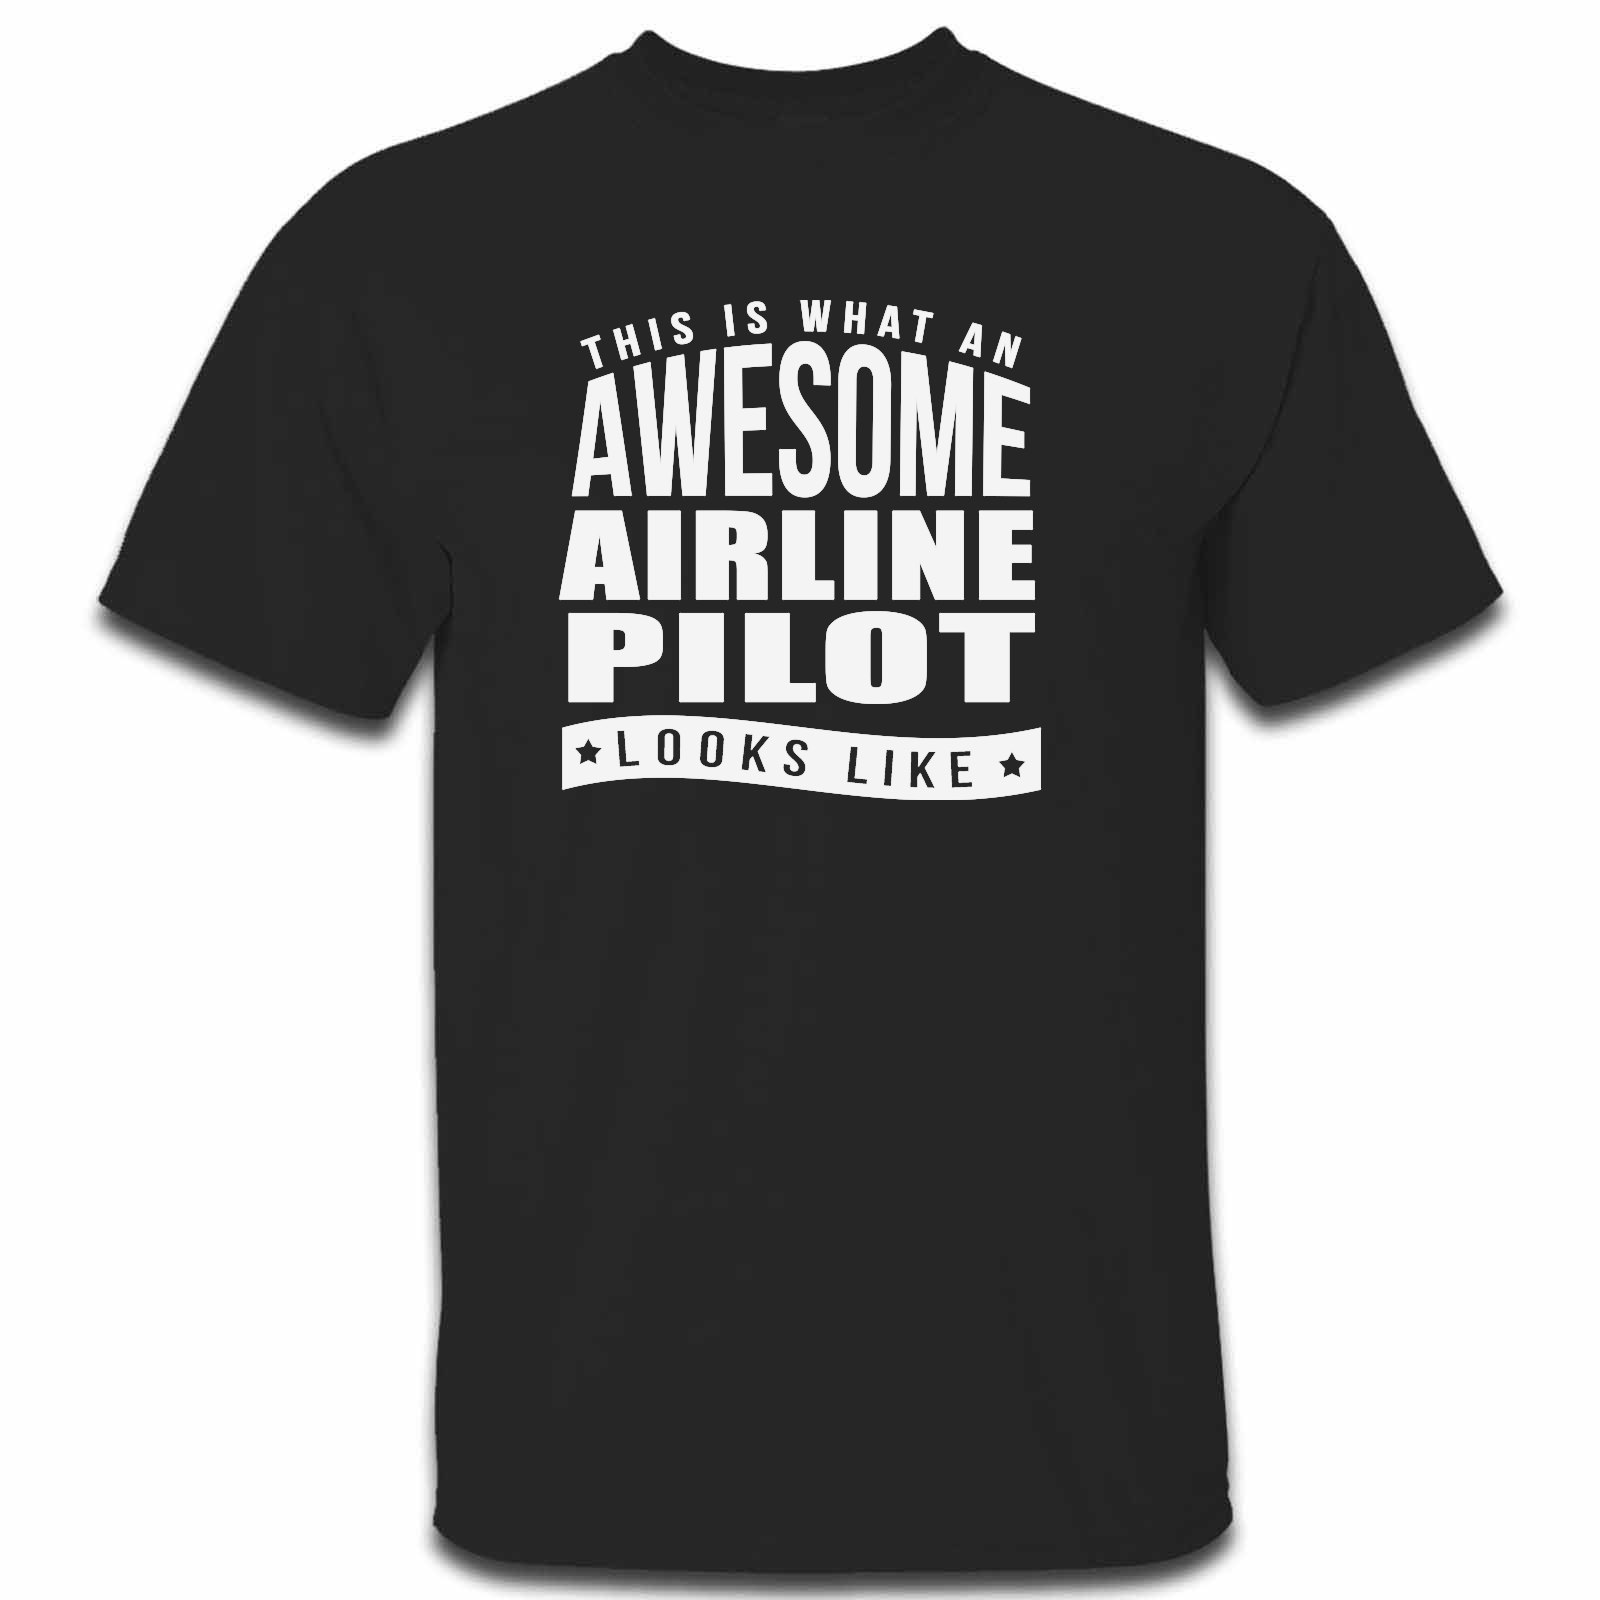 Picture of This Is What An Awesome Airline Pilot Looks Like Mens Tshirt